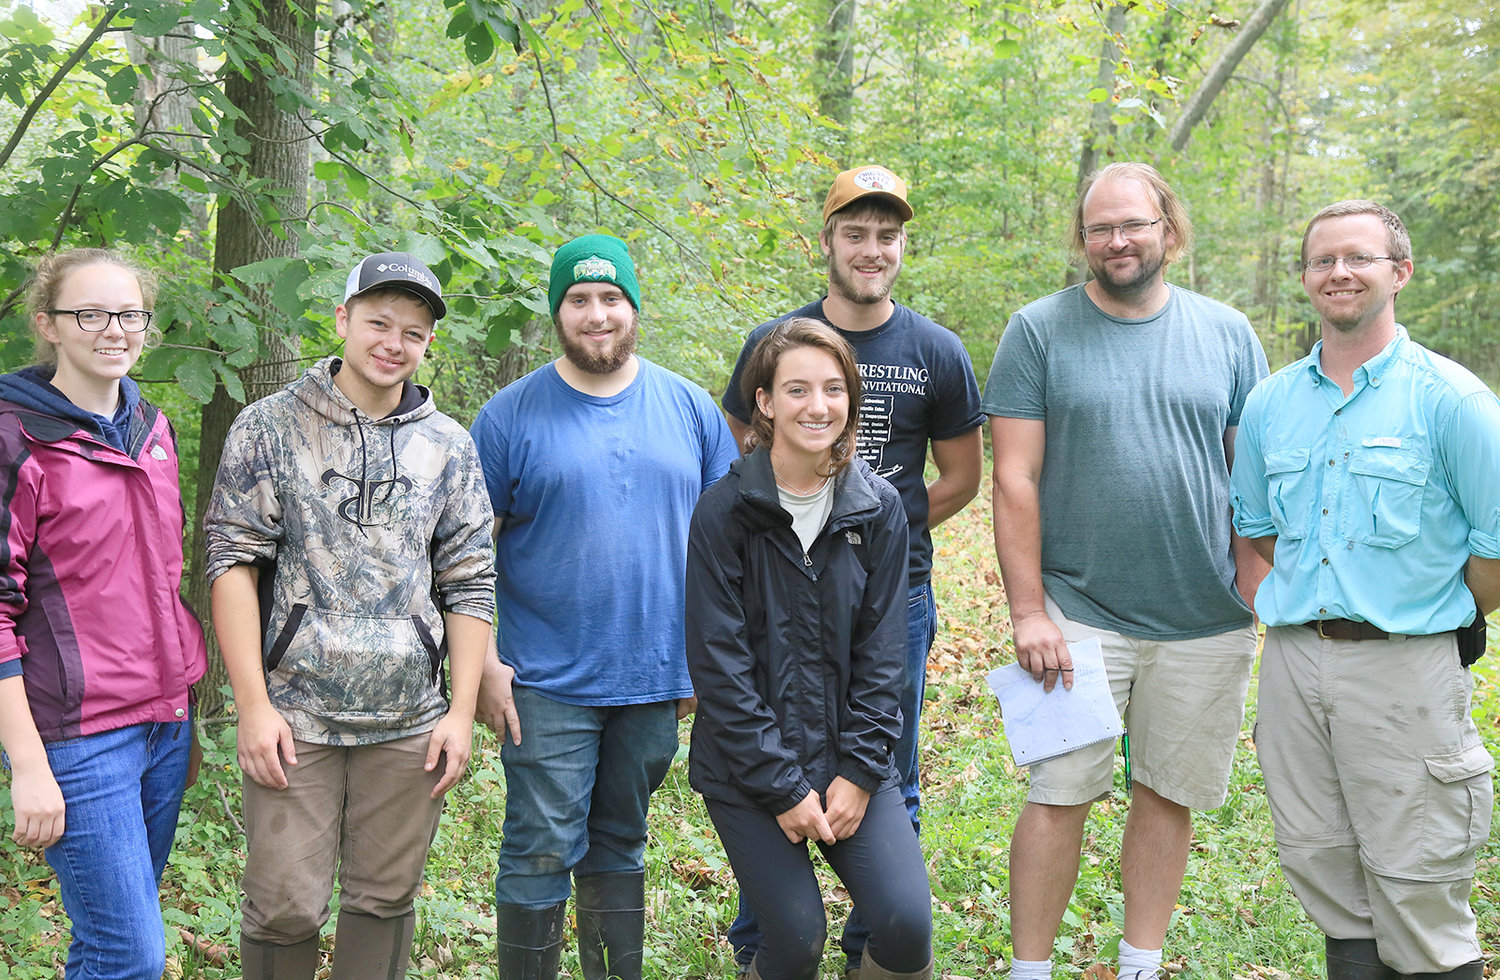 IN THE FIELD — Pictured are SUNY Morrisville professor Eric Diefenbacher and students in his fall 2018 Herpetology class, who were recently published in a scientific journal. From left: Emily Coscomb, Collin Sullivan, Talon Abrams, Kate Augustine, Sam Casler, Phil Keville and  Diefenbacher.